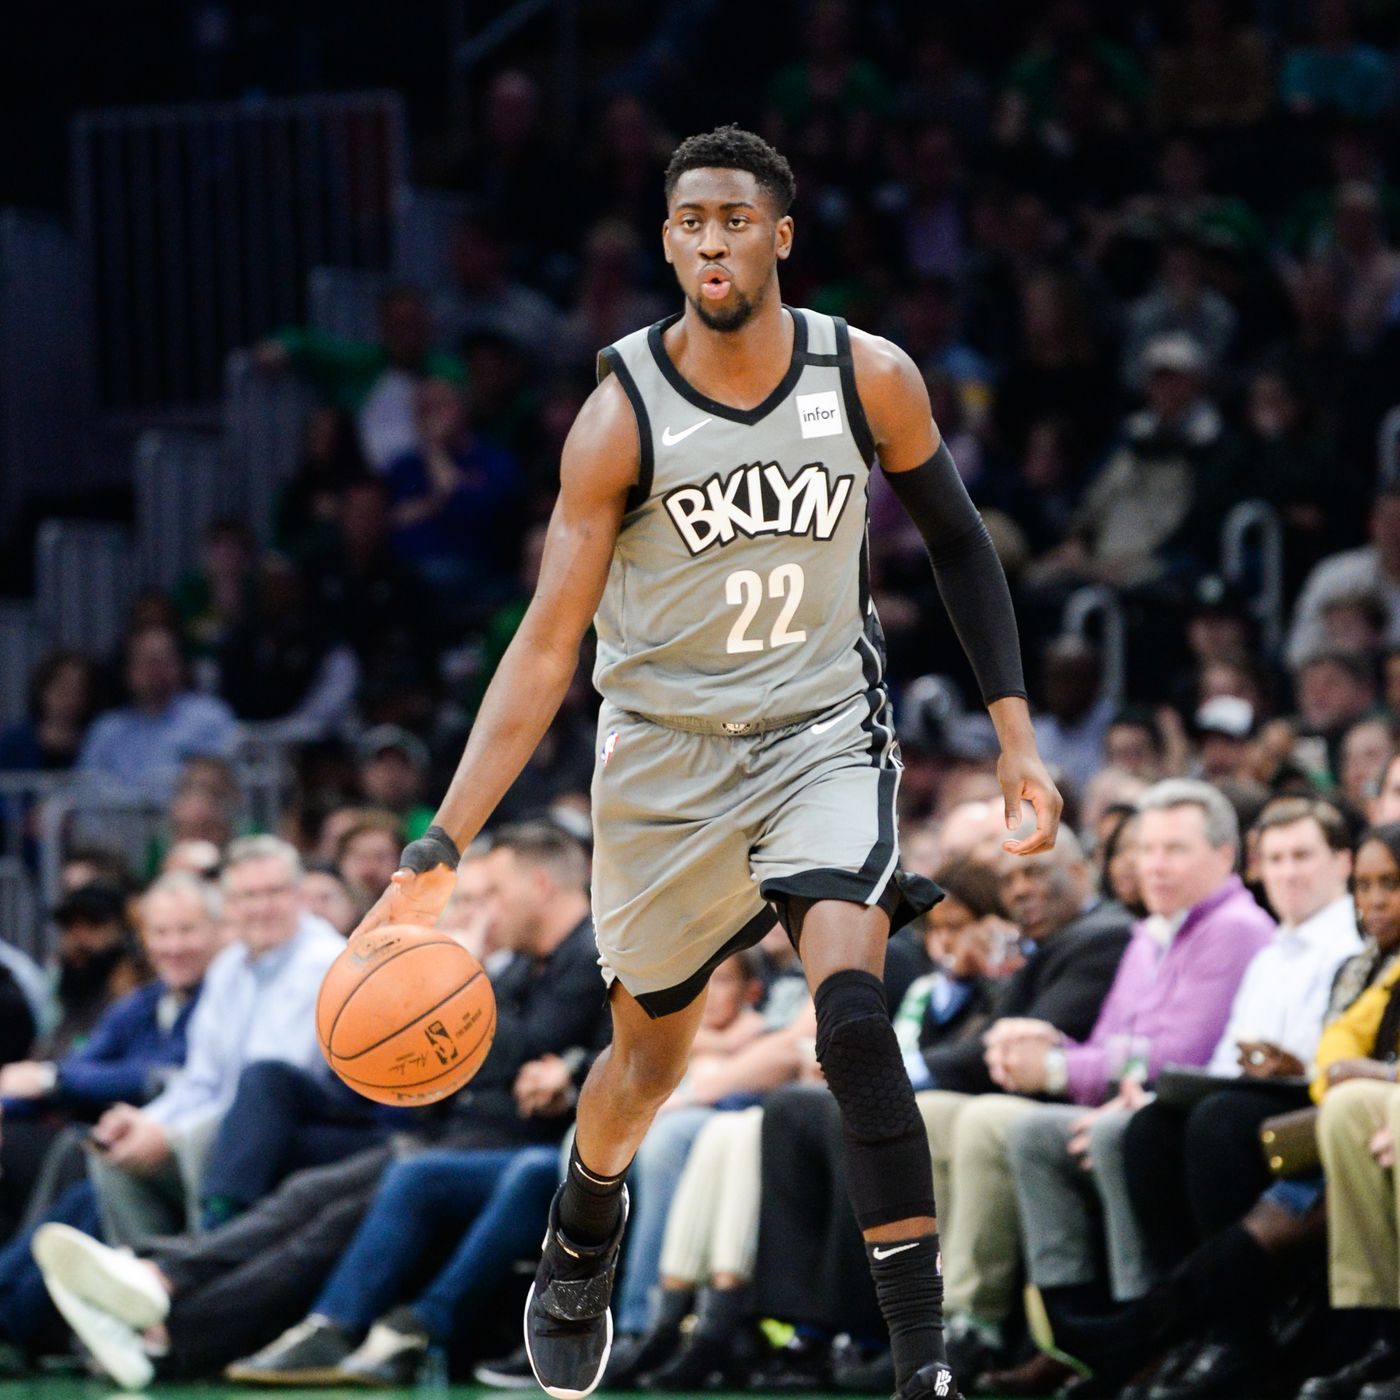 Caris Levert Goes Off For 51 Point Performance Vs Boston Celtics Maize N Brew